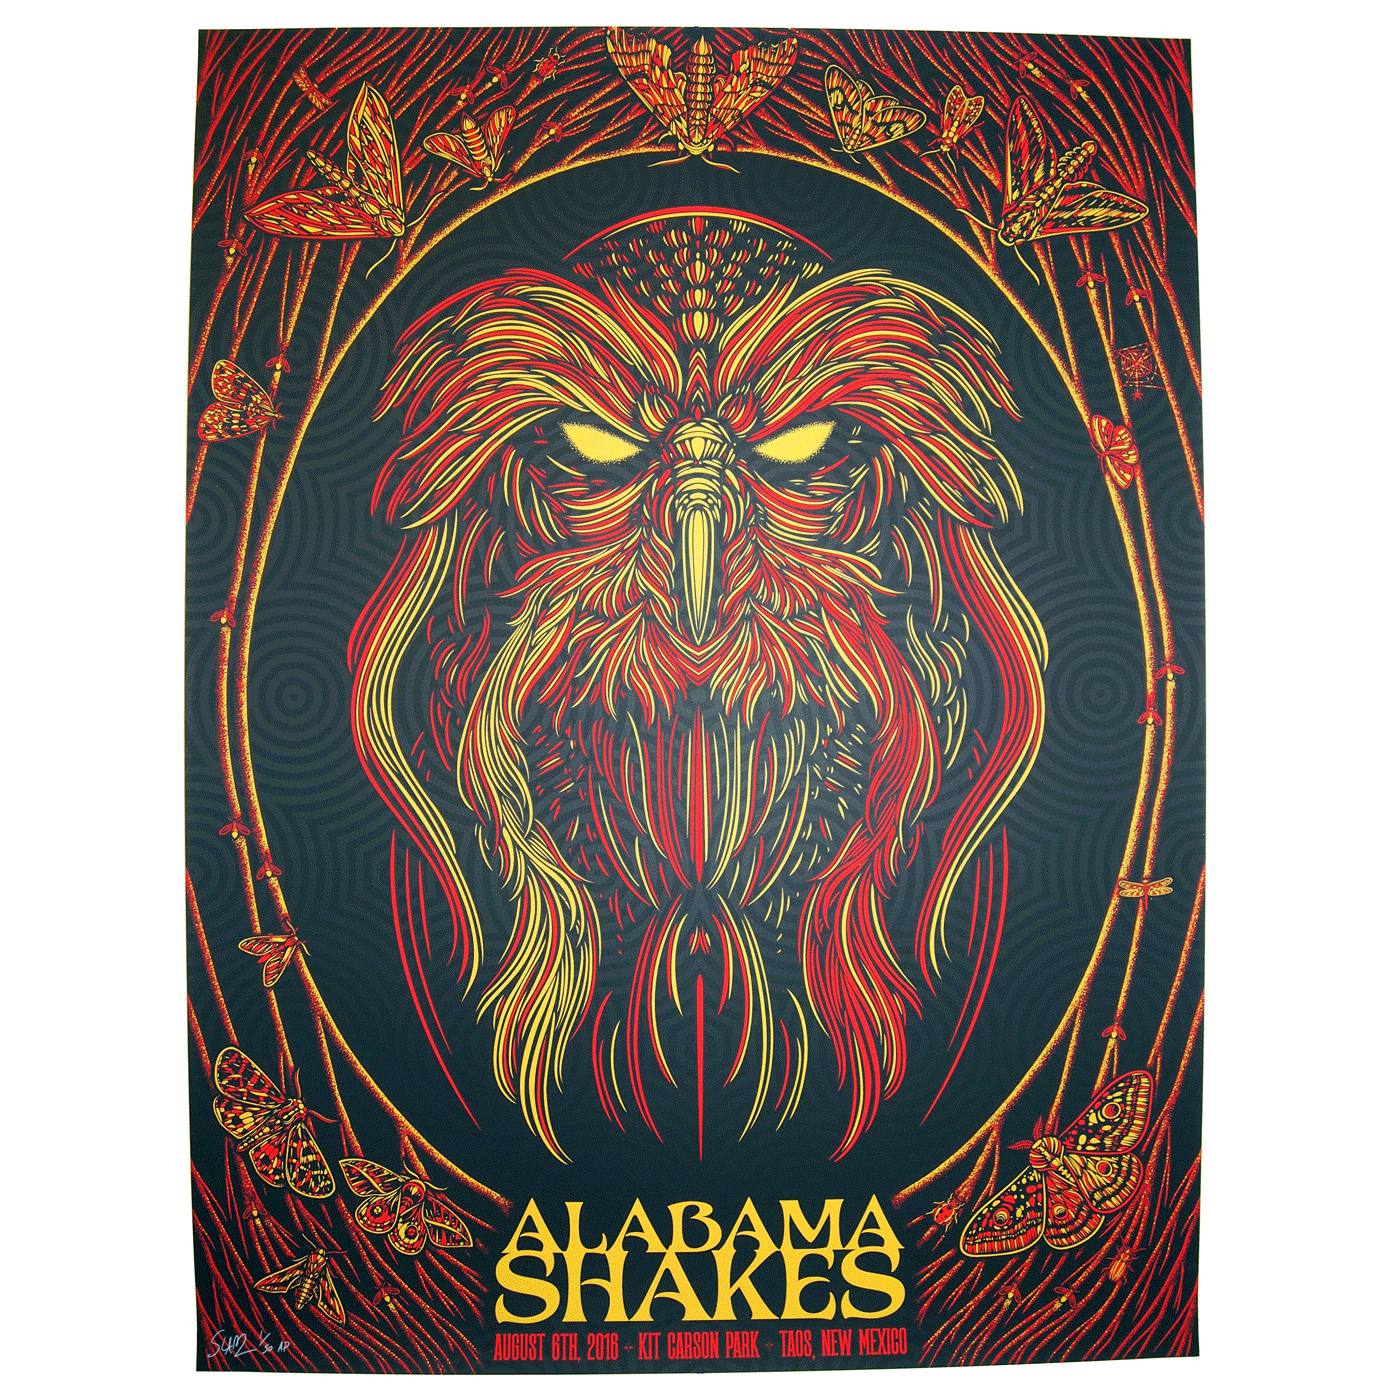 """Alabama Shakes - Taos, NM 2016"" by Todd Slater.  18"" x 24"" 3-color Screenprint.  Artist edition of 50 S/N.  $50"